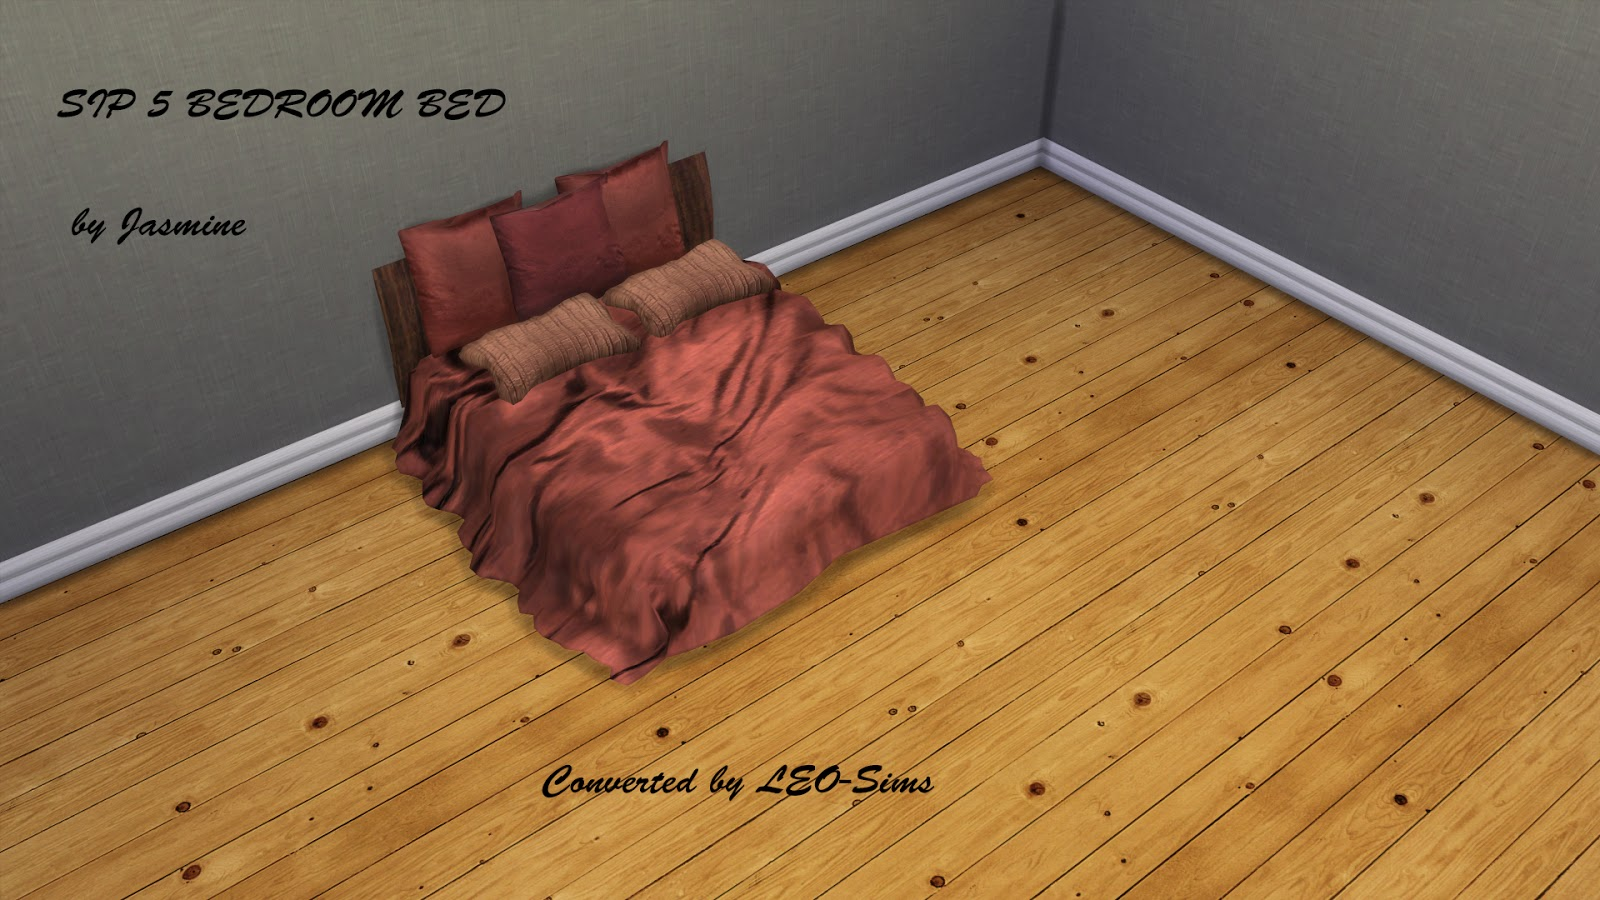 SIMS IN PARIS BEDS- CONVERSIONS By Leo sims